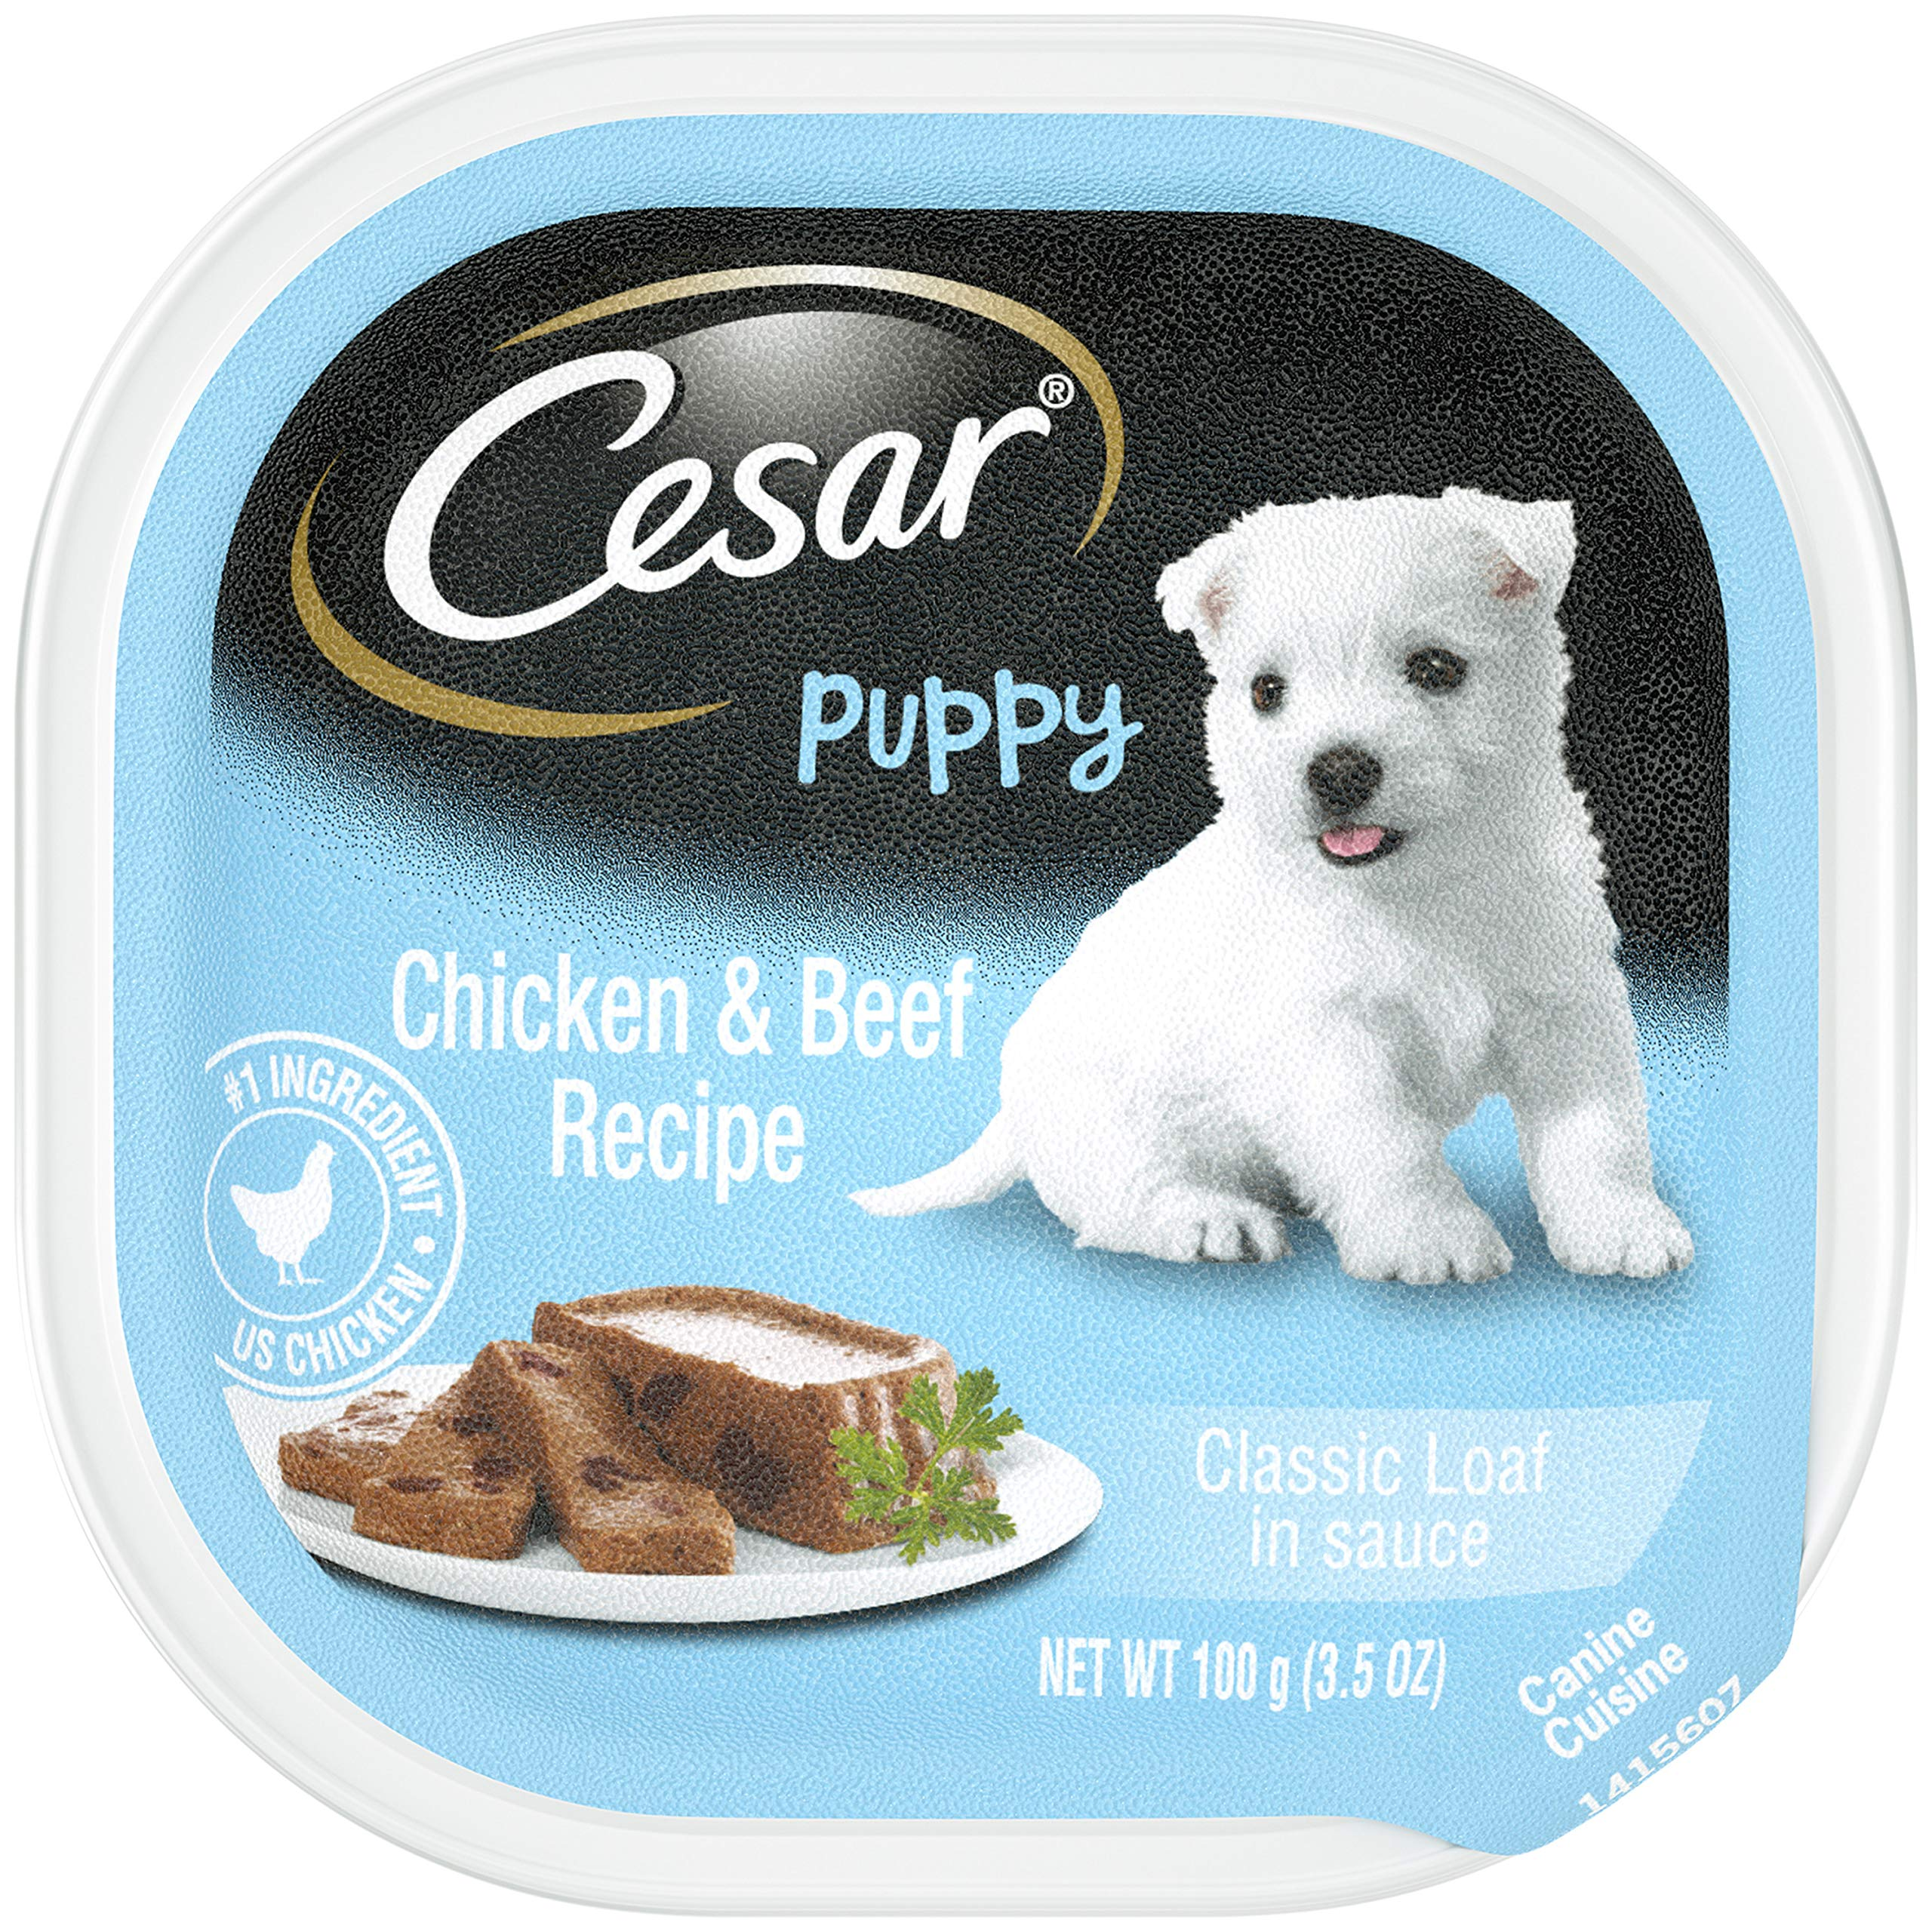 CESAR Puppy Soft Wet Dog Food Classic Loaf in sauce Chicken & Beef Recipe, (24) 3.5 oz. Easy Peel Trays by Cesar